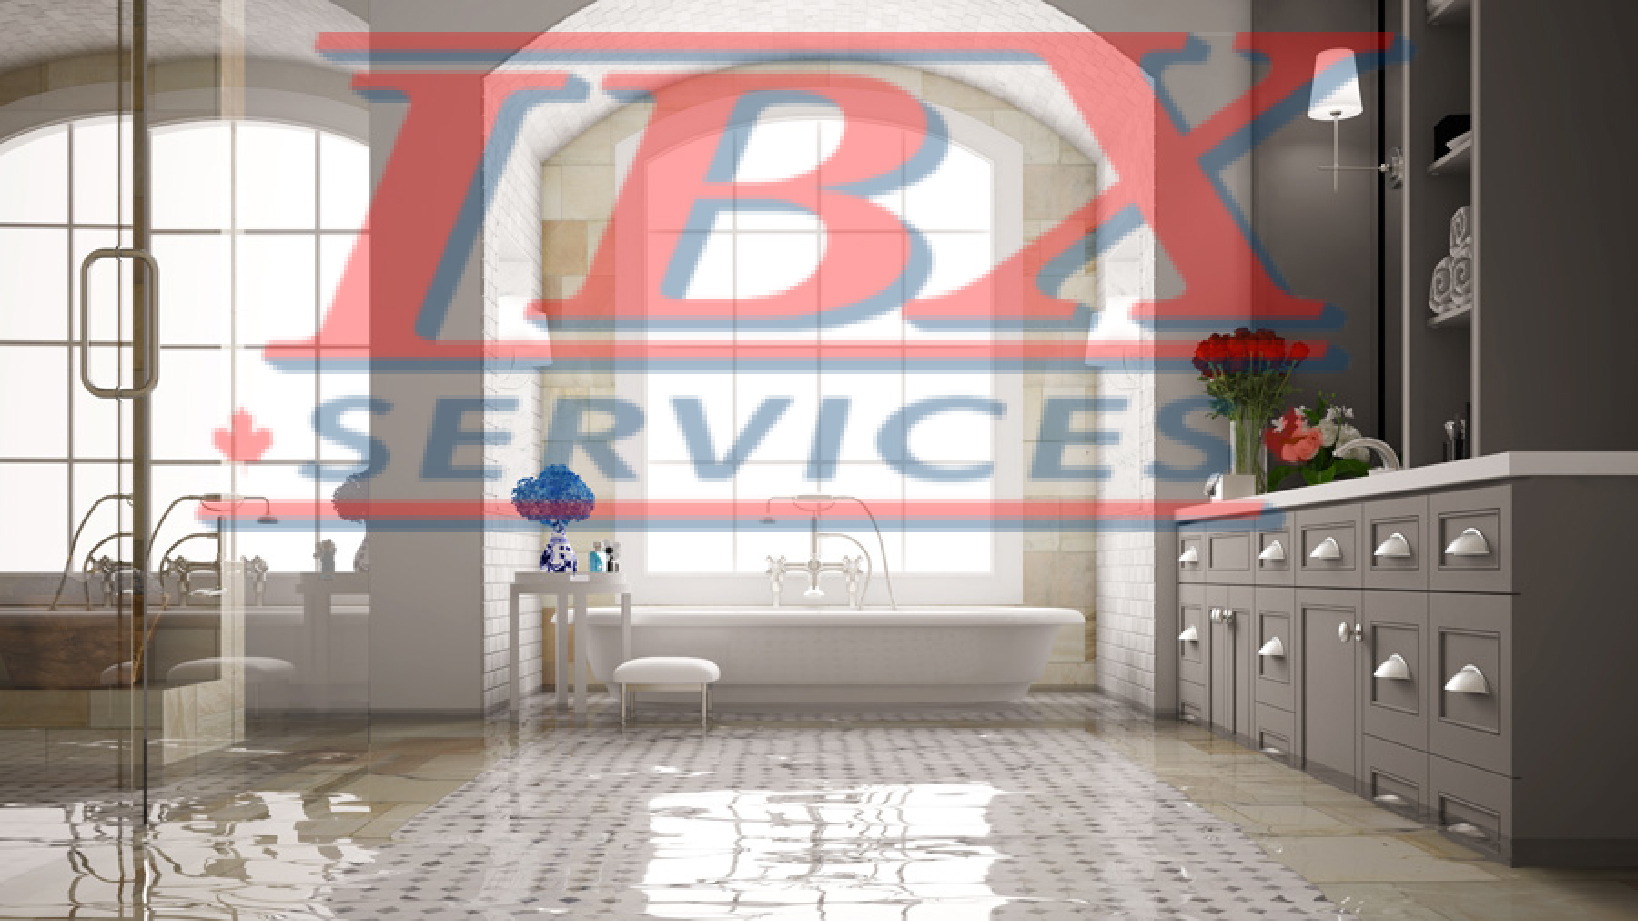 What do water damage companies do